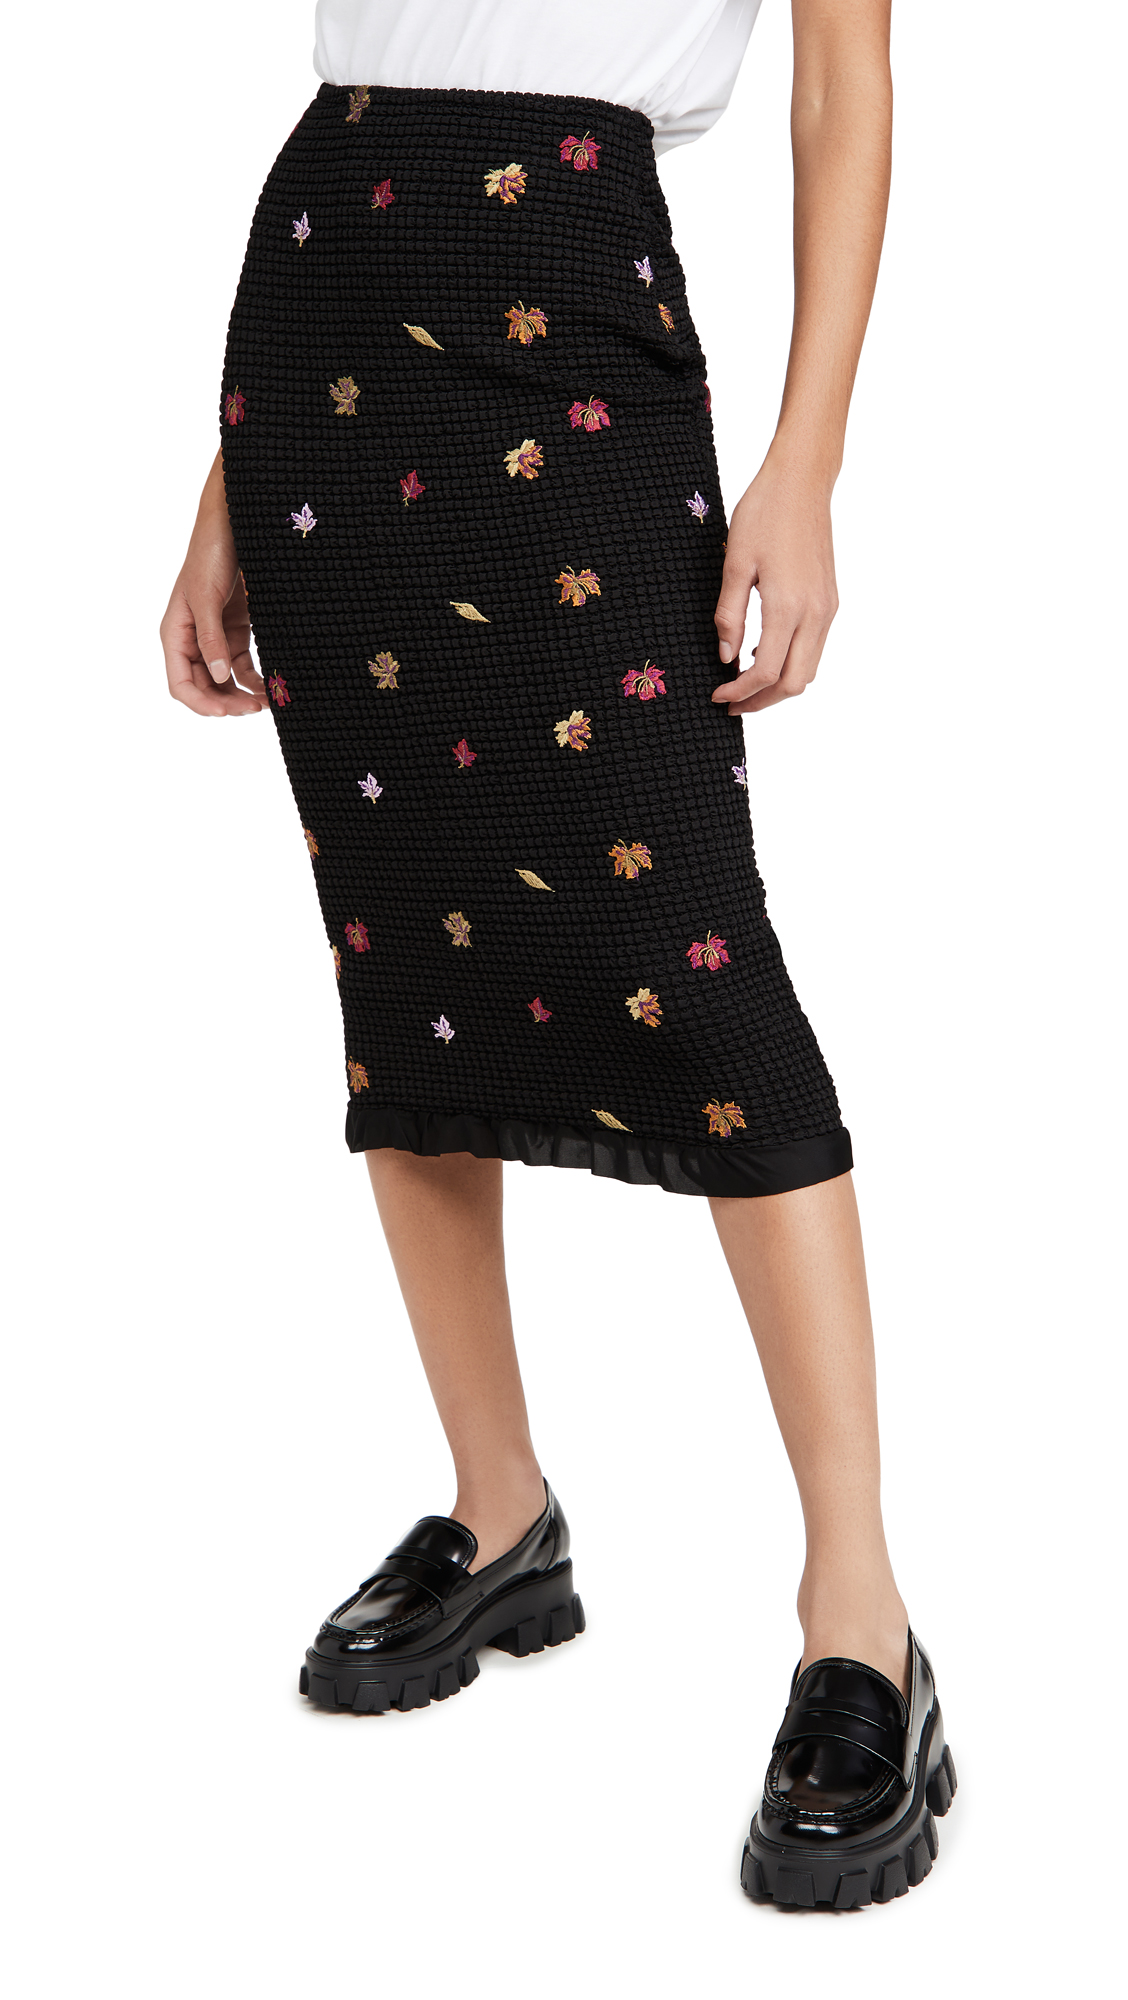 Off-White Embroidered Leaves Skirt